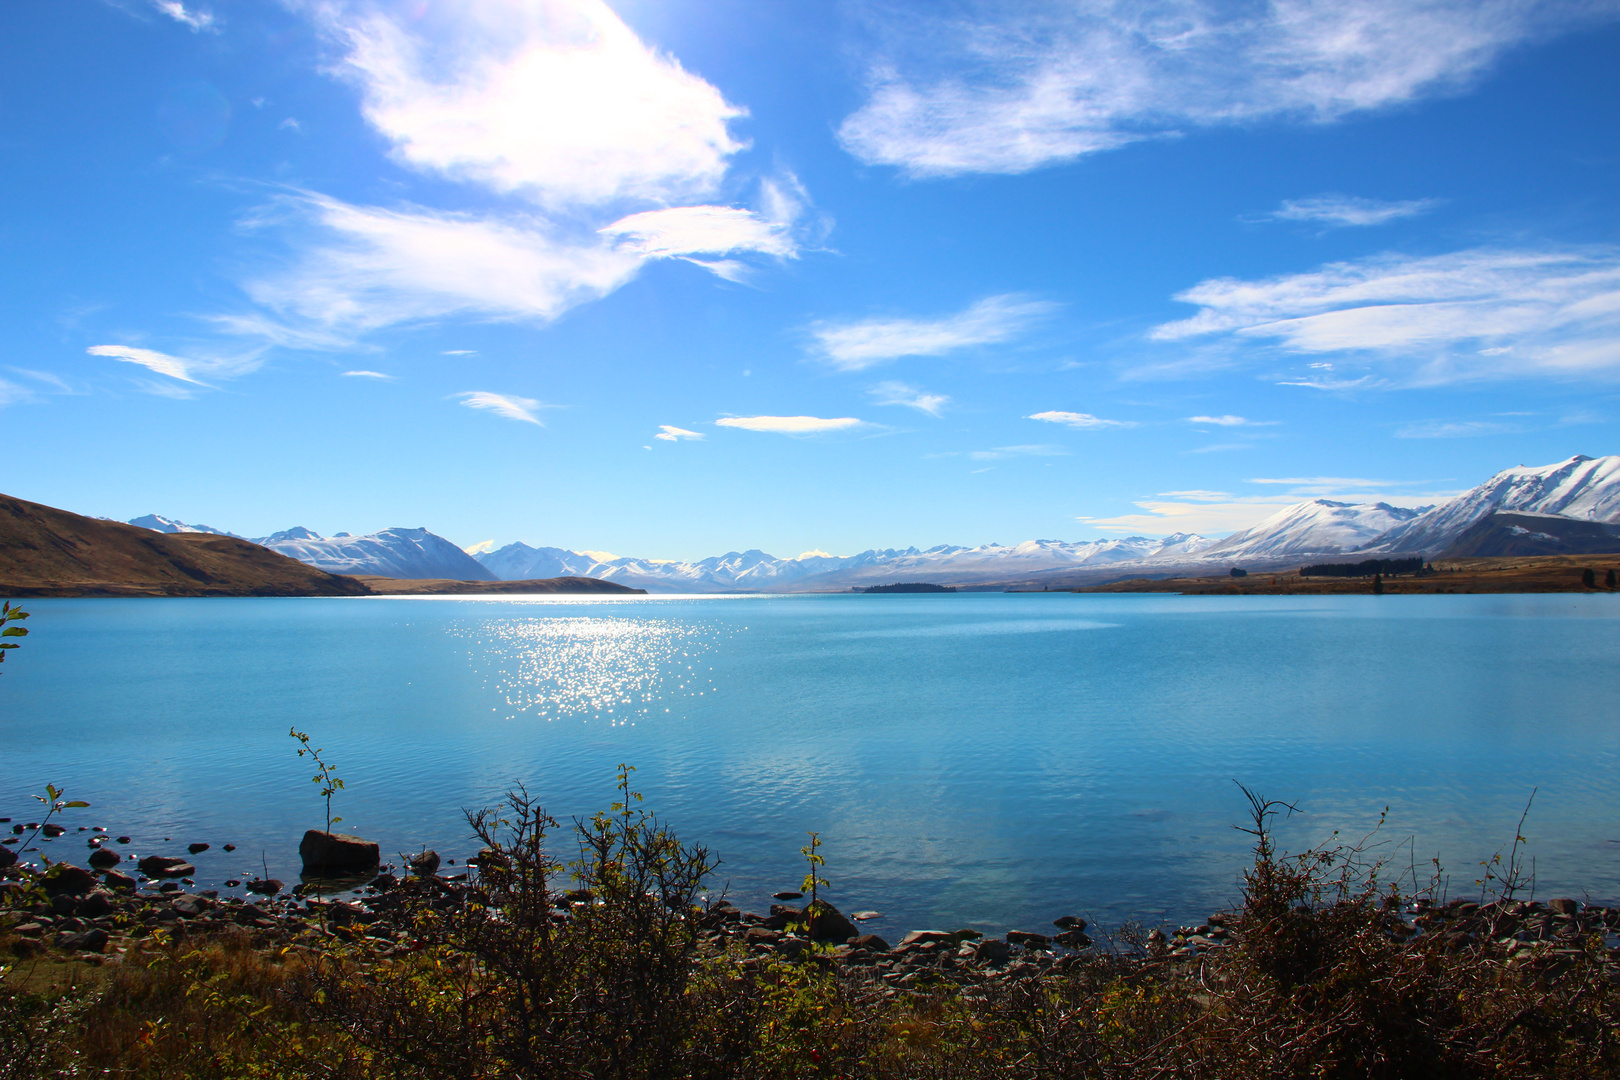 Lake Tekapo... - The blue lake